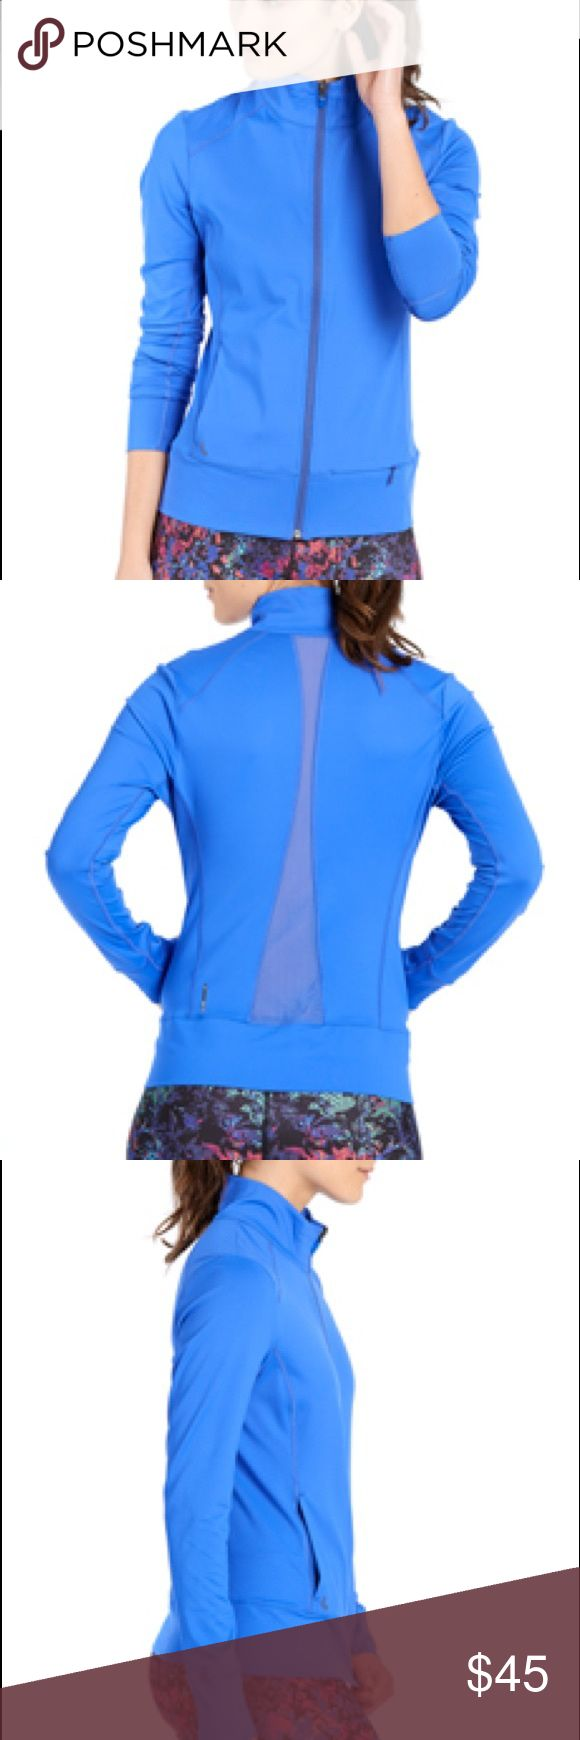 Lolë Essential Up Jacket Perfect condition. Worn once or twice. This Lolë stand-up collar jacket with mesh inserts is a fan favourite. Thanks to its thumbholes, this top keeps up with you no matter what activity you choose. The reflective logo keeps you safe when you train outside when it's dark. Center front lock-down zipper. Two hand pockets. Length: 25 in./62.5 cm Lole Jackets & Coats